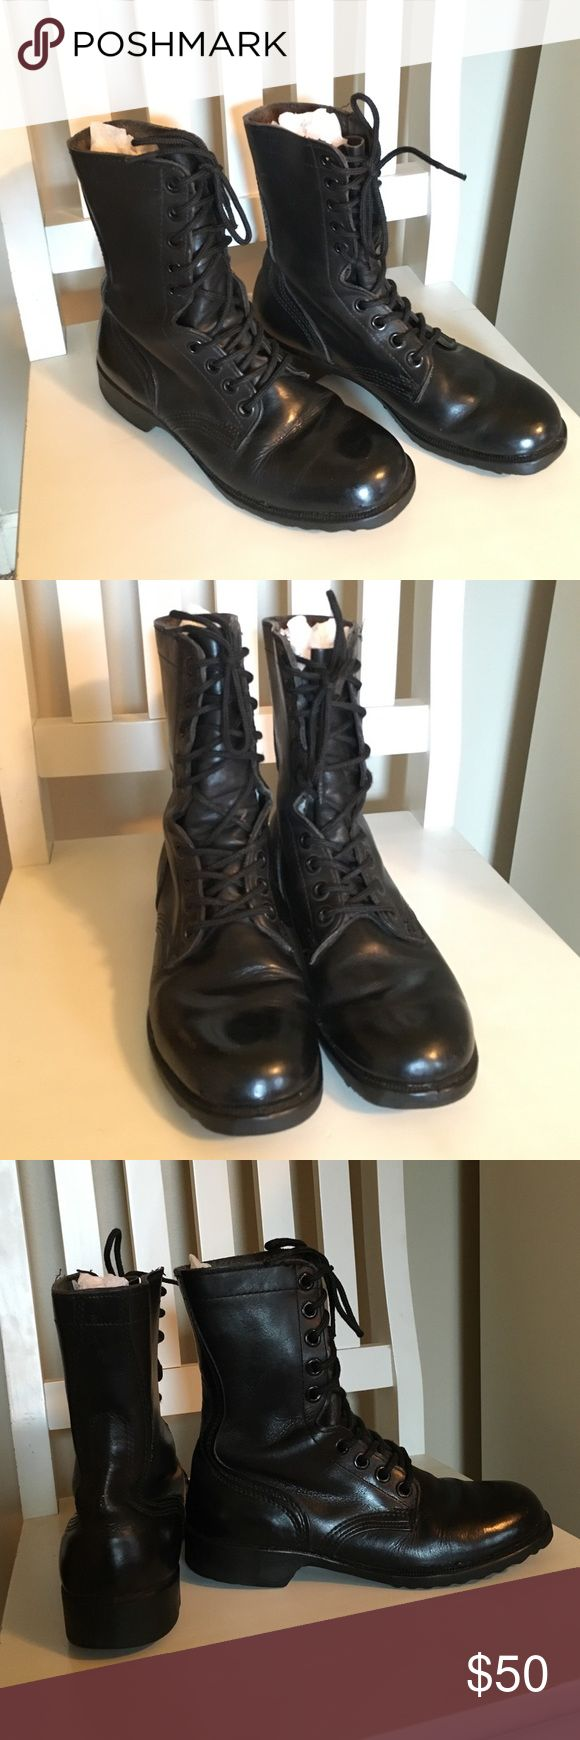 Vintage 1980s US army combat boots Lightly used, worn some but still in very good condition. They are a men's 6.5 so they would fit a women's 8.5. Great boots for people who like vintage things or just looking for some cute combat boots to wear! Let me know if you have questions! Shoes Combat & Moto Boots